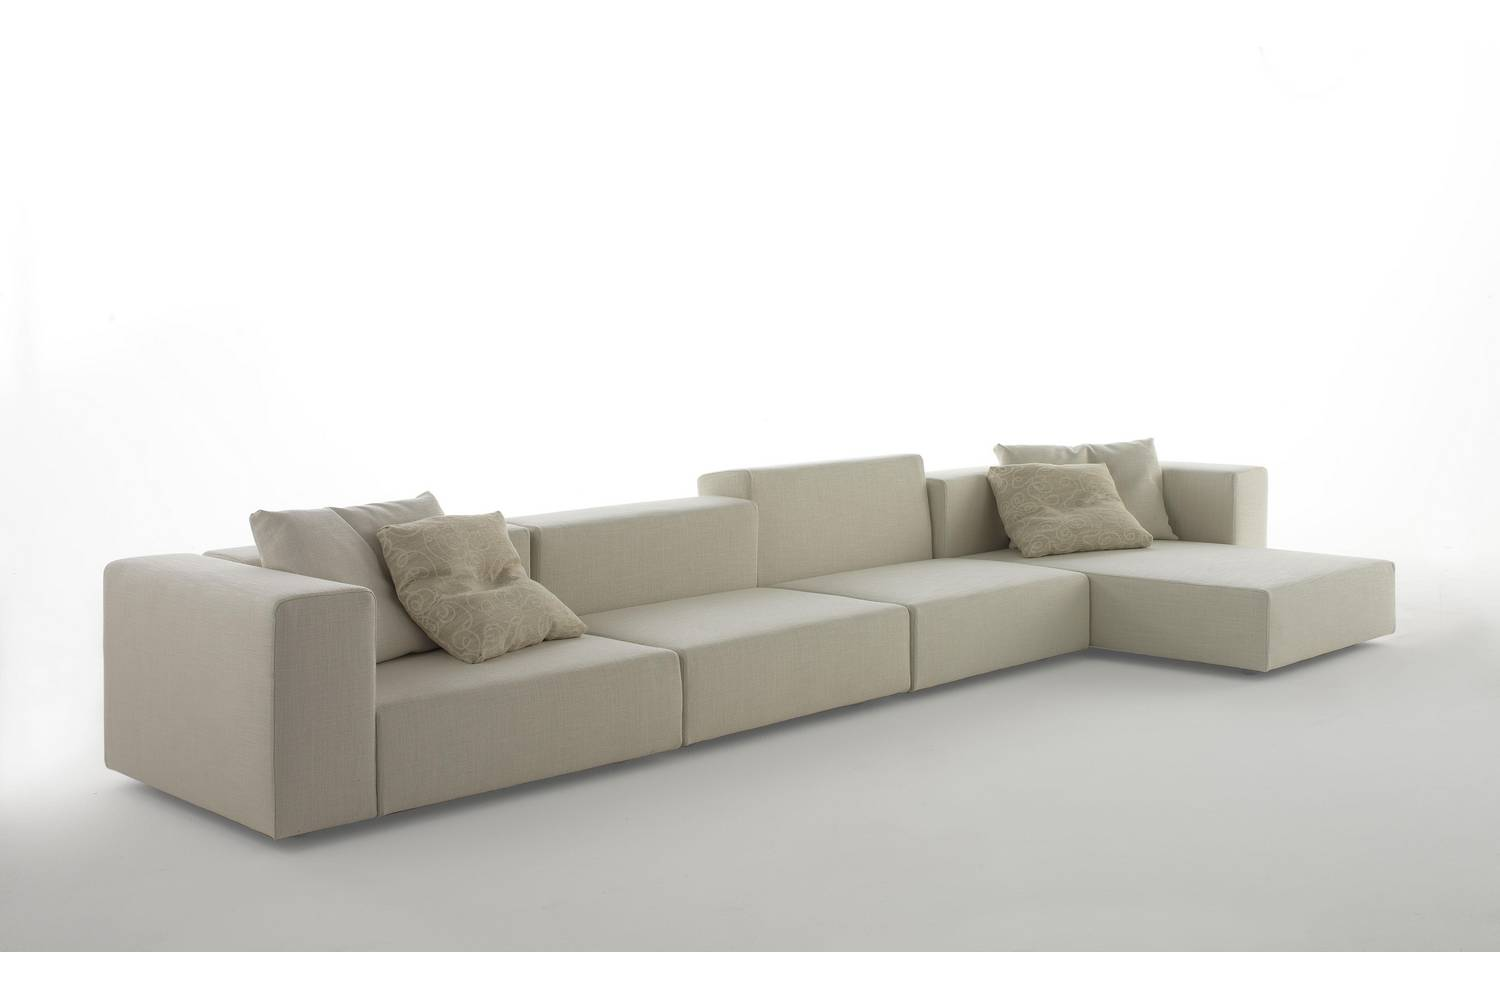 Living Divani The Wall Sofa Wall 1 Sofa By Piero Lissoni For Living Divani Space Furniture